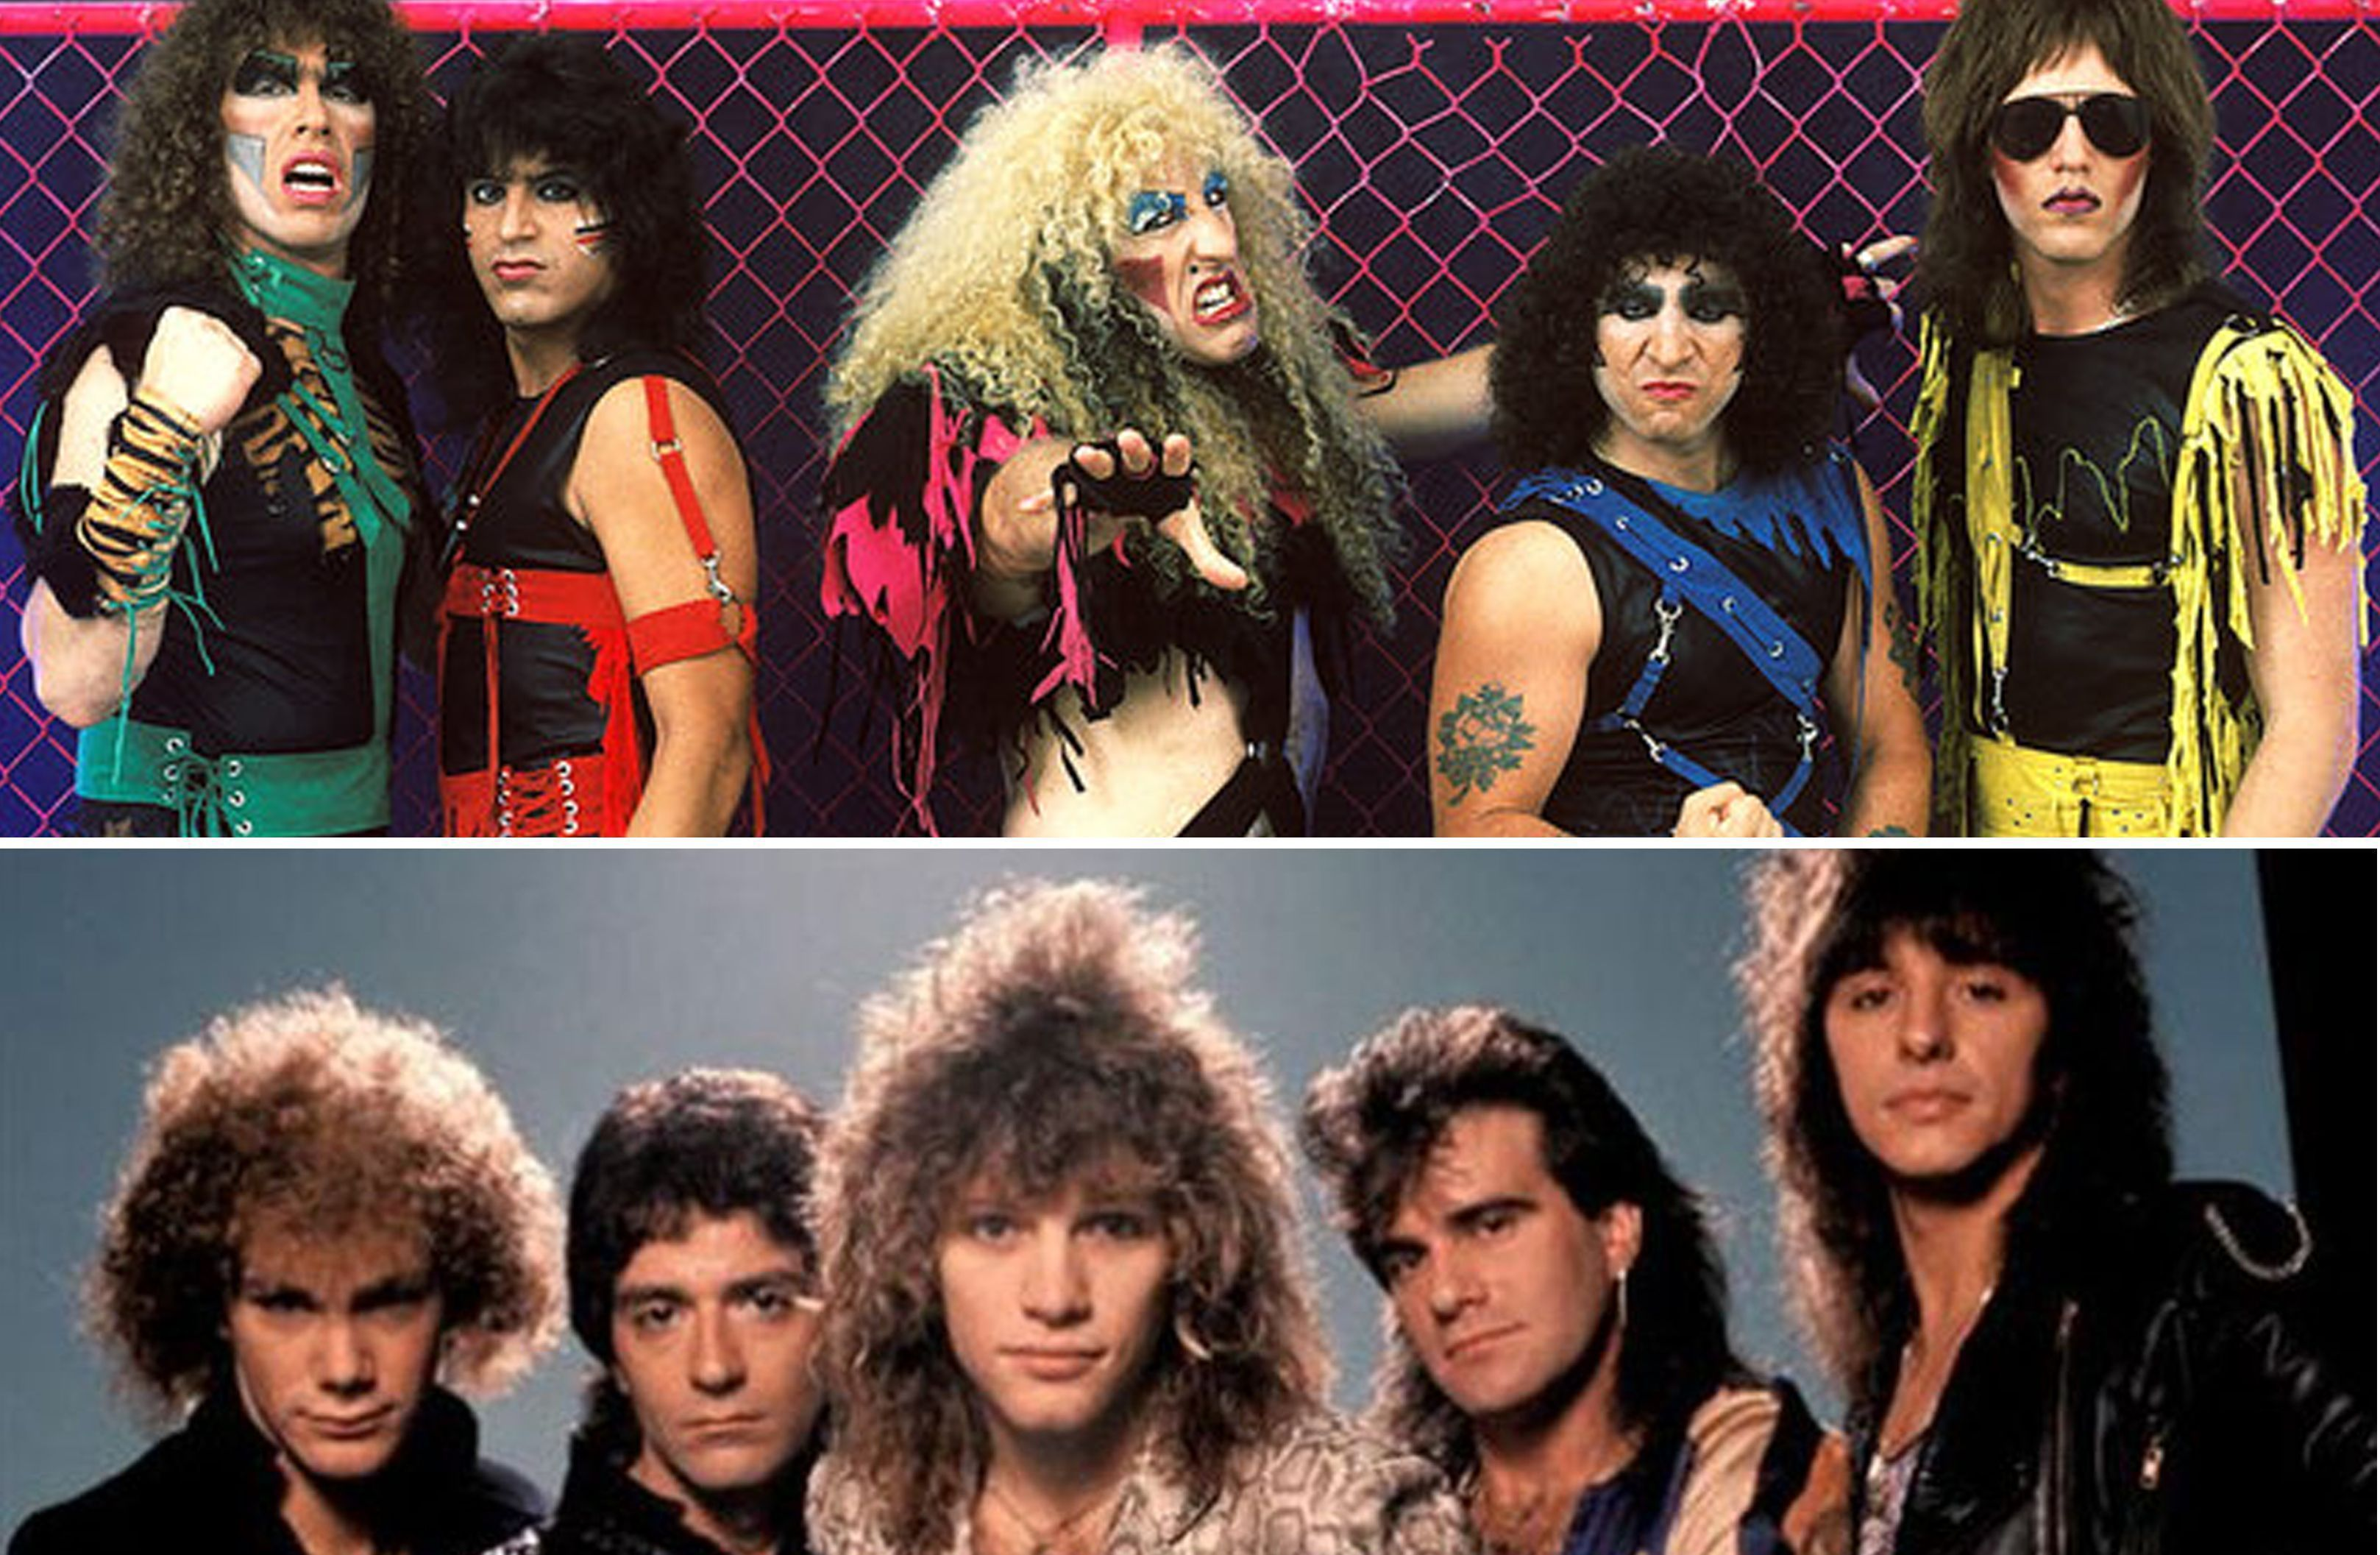 Classic hair metal bands (1980s and 90s)